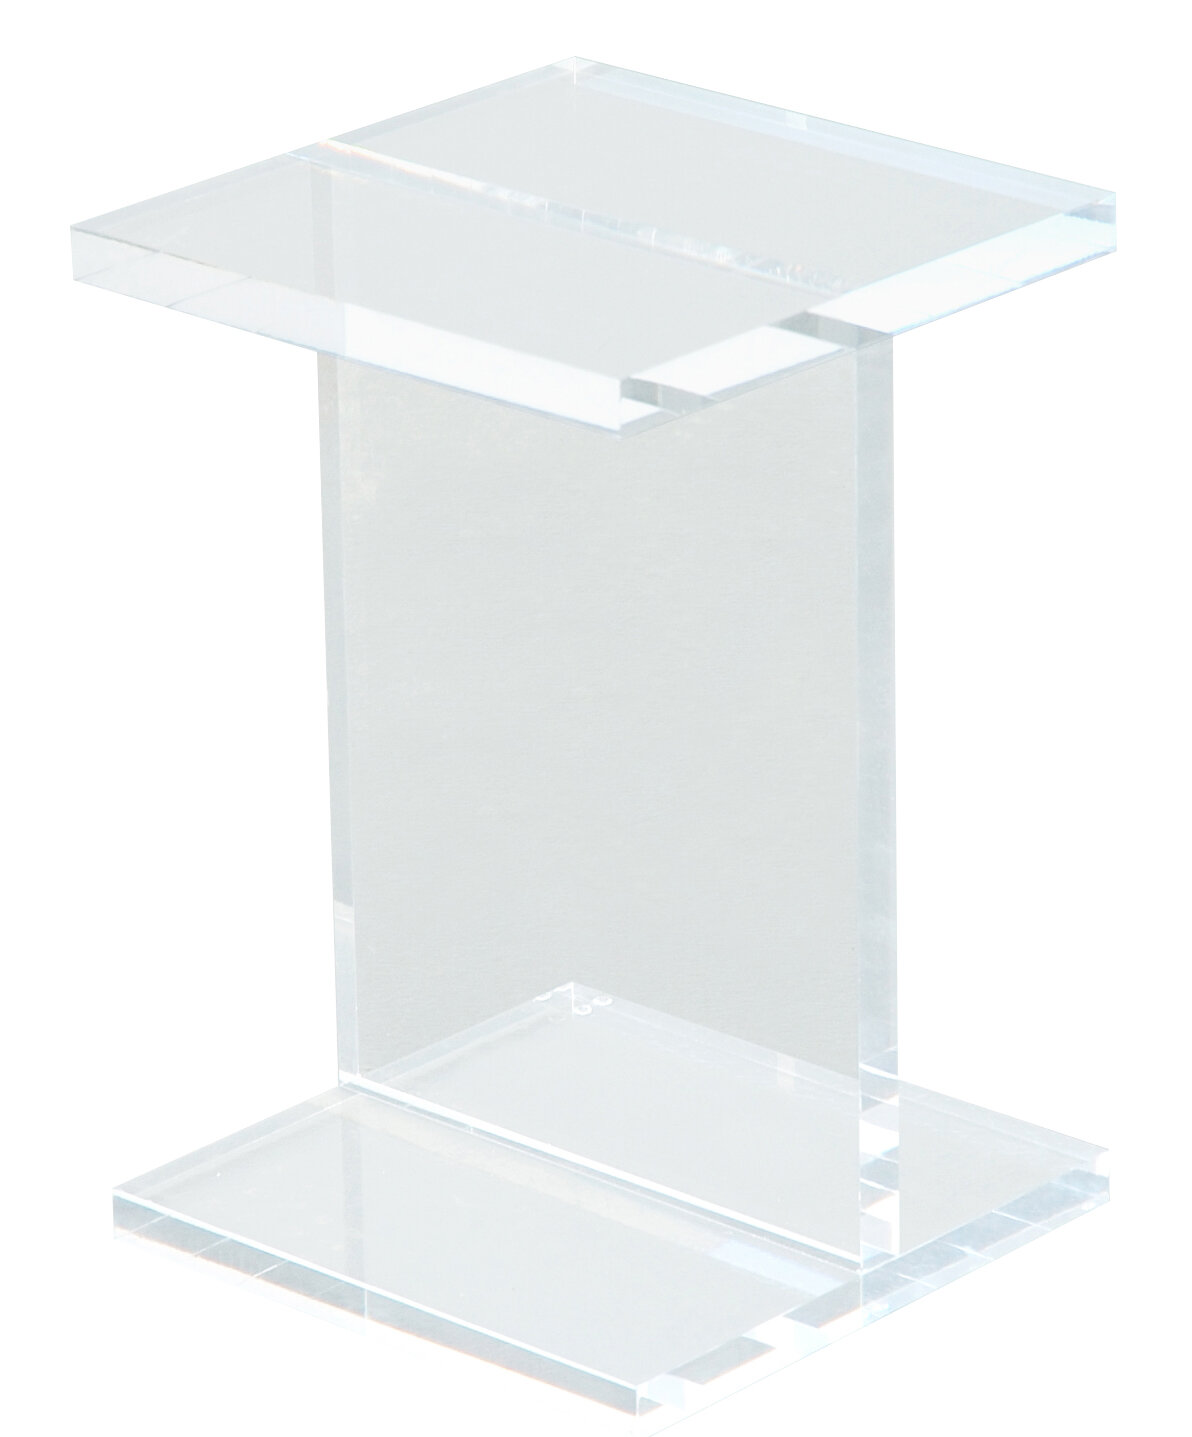 products for supercoolcreations clear table runner rectangular acrylic rect